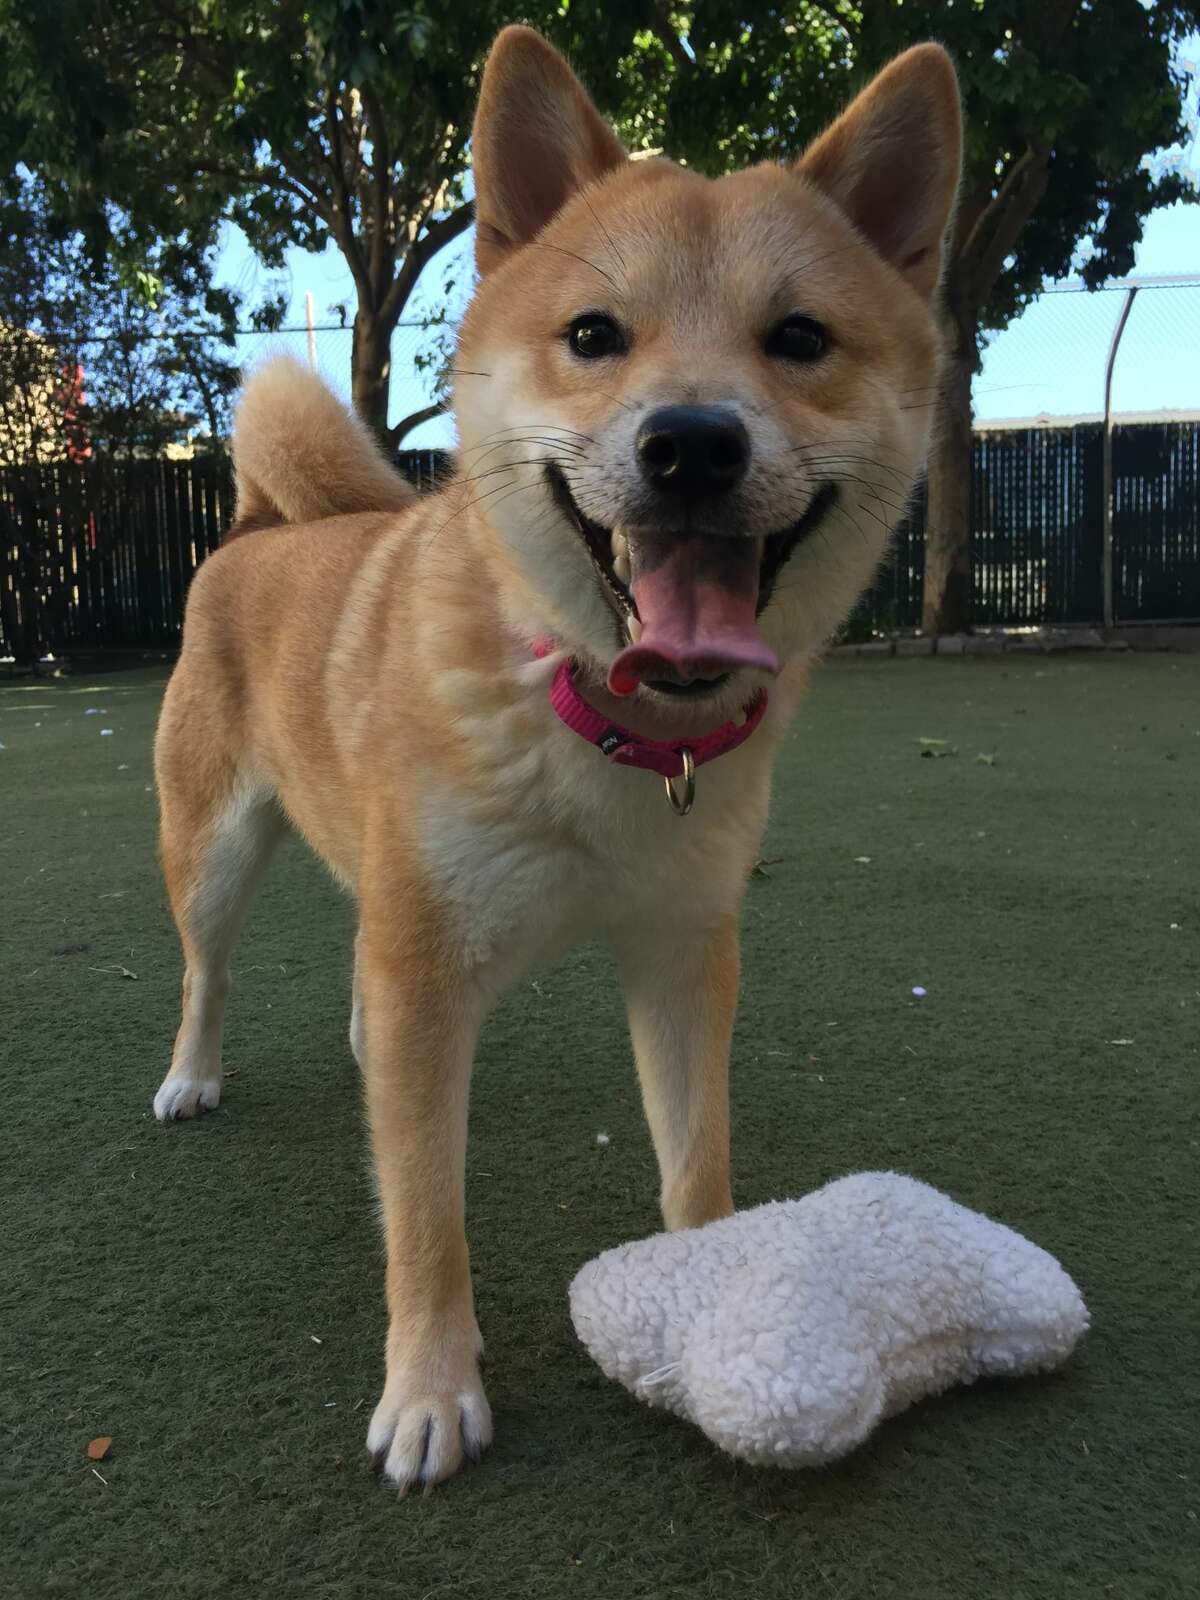 The owner of this Shiba Inu has been sentenced to probation for graphic animal abuse that was caught on an elevator camera. Aniki is now being cared for at Northern Nevada Shiba Rescue, where the staff will work to find a permanent home for him.